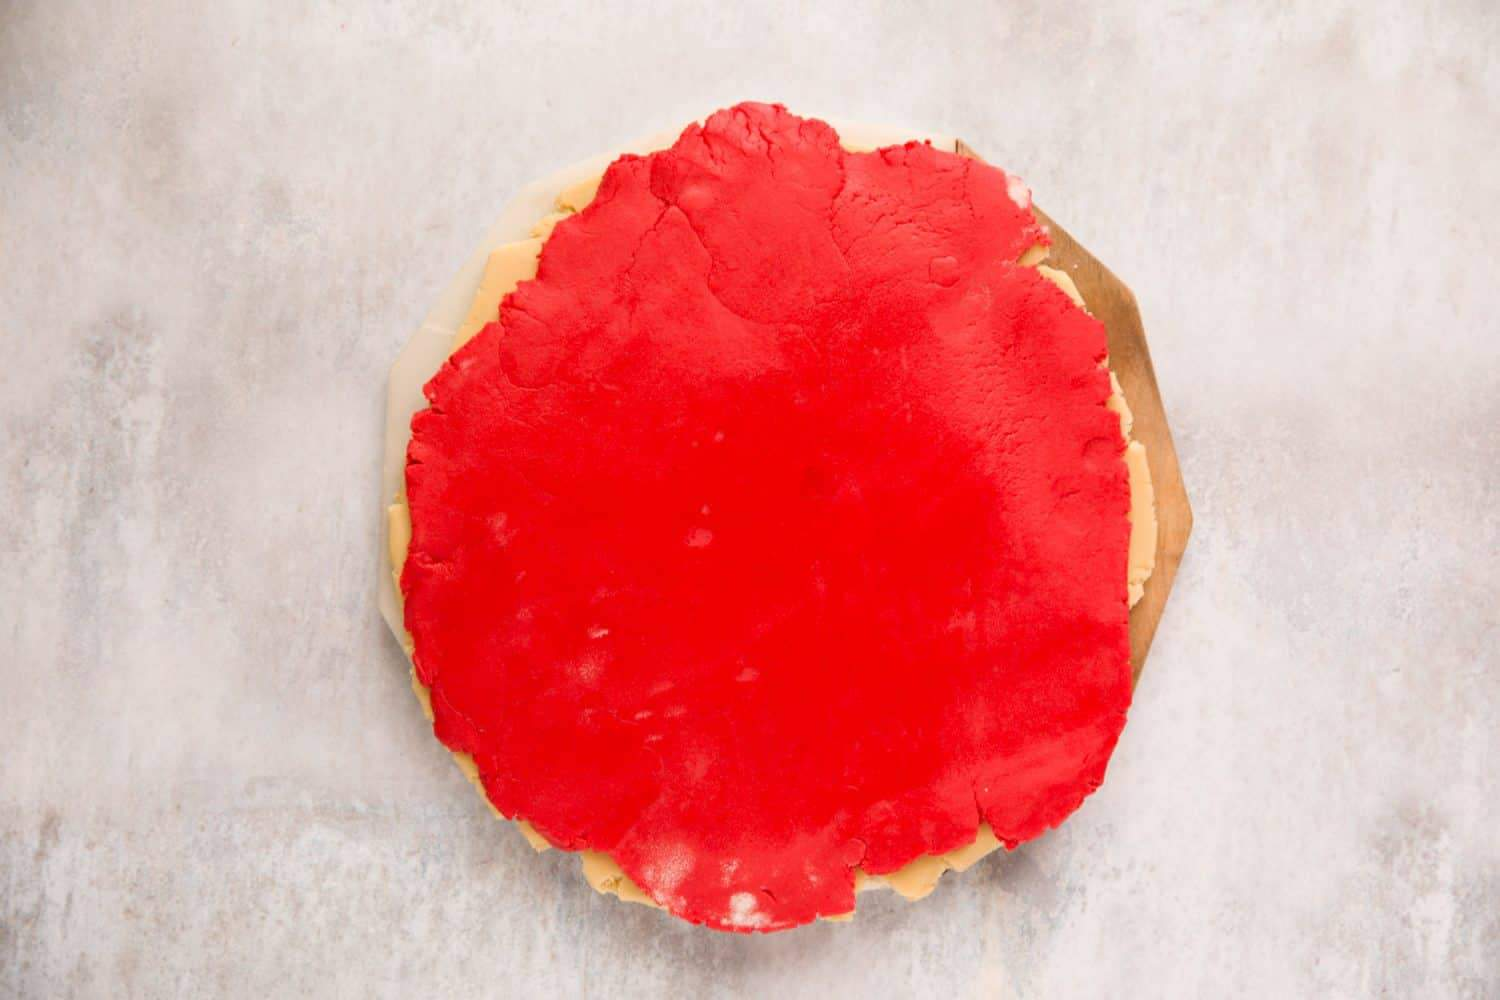 A sheet of red coloured vanilla biscuit dough.